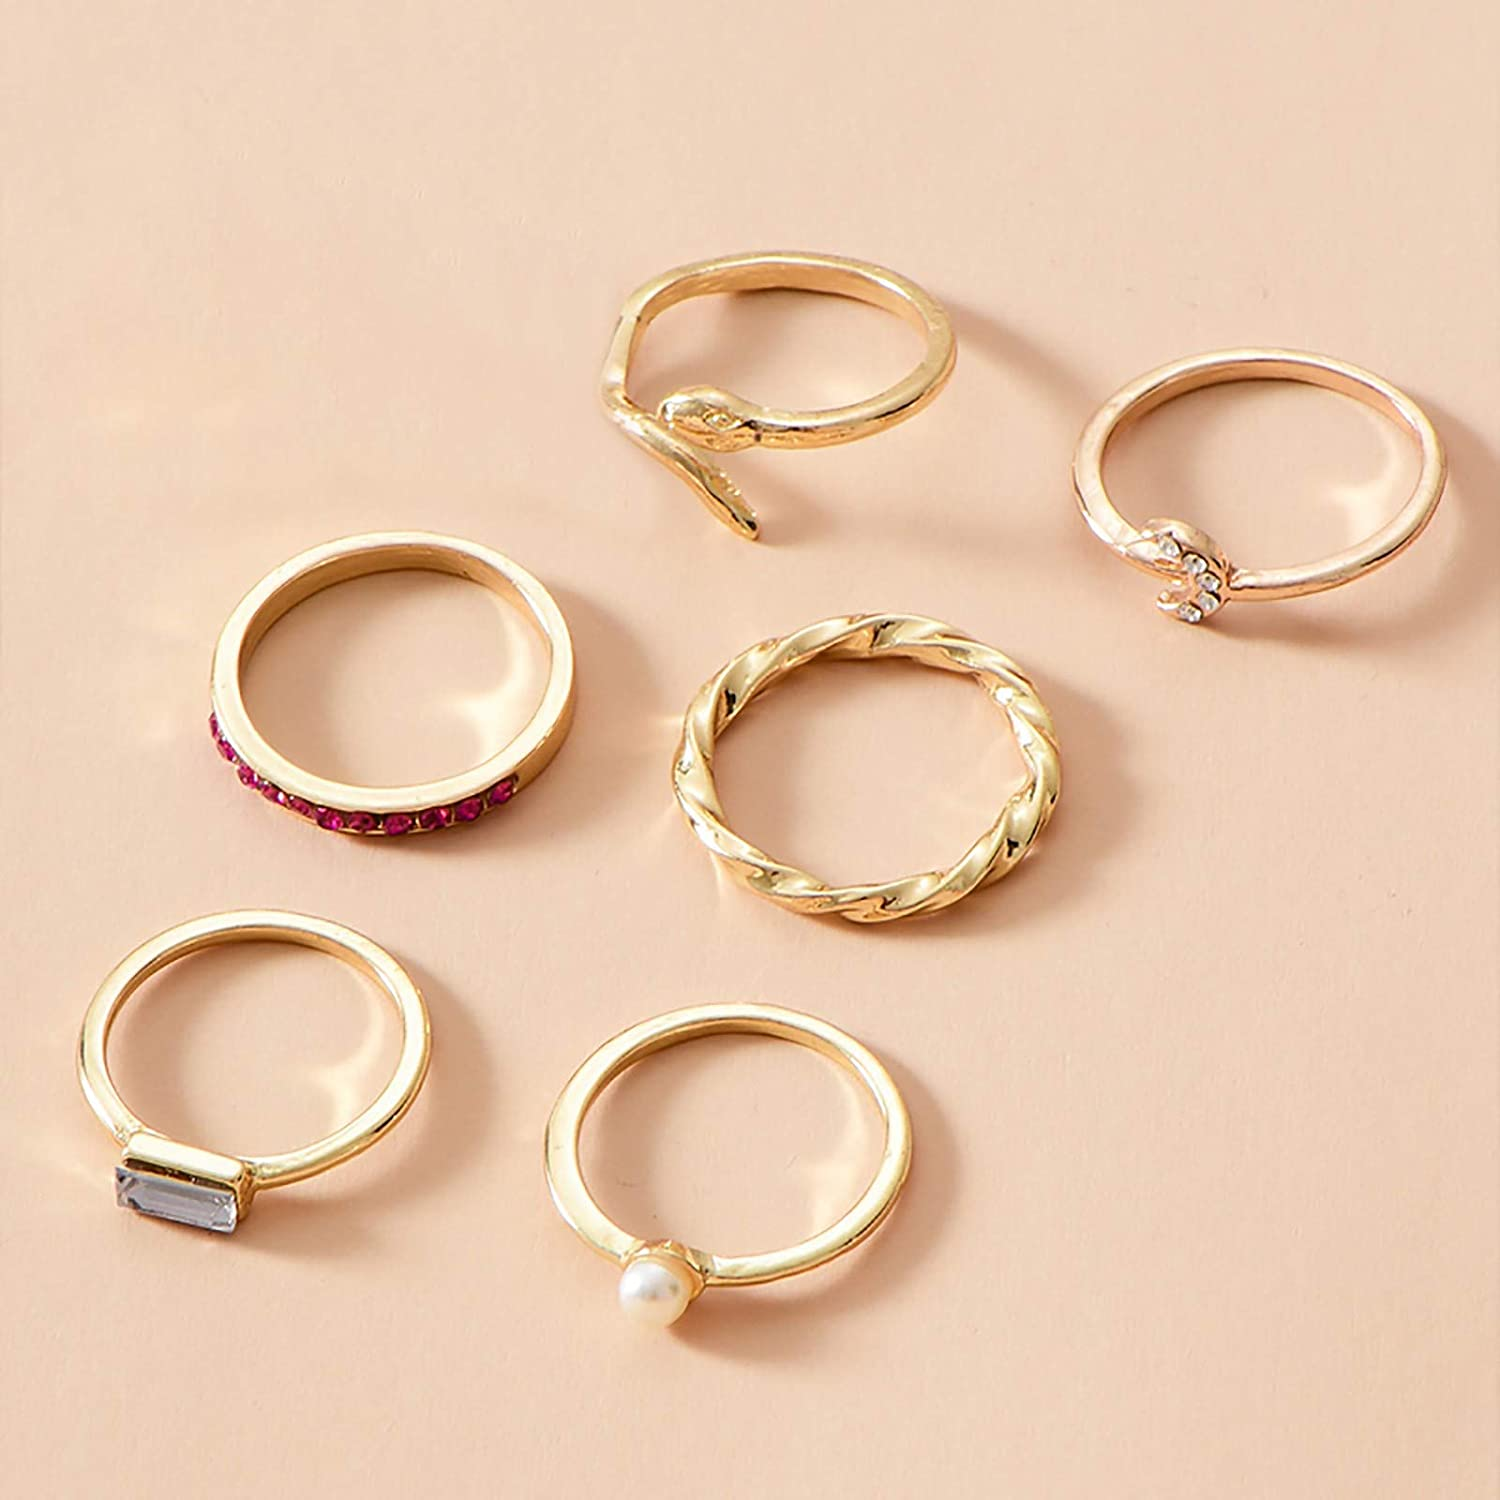 6 Pcs Gold Rings for Women Midi Knuckle Joint Rings Set Cold Wind European And American Geometric Stacking Stackable Rings Jewelry Gifts for Birtday Party Anniversary Holidays Graduation for Daughter Mom Friends Sisters Men Boys Boyfriends Dad